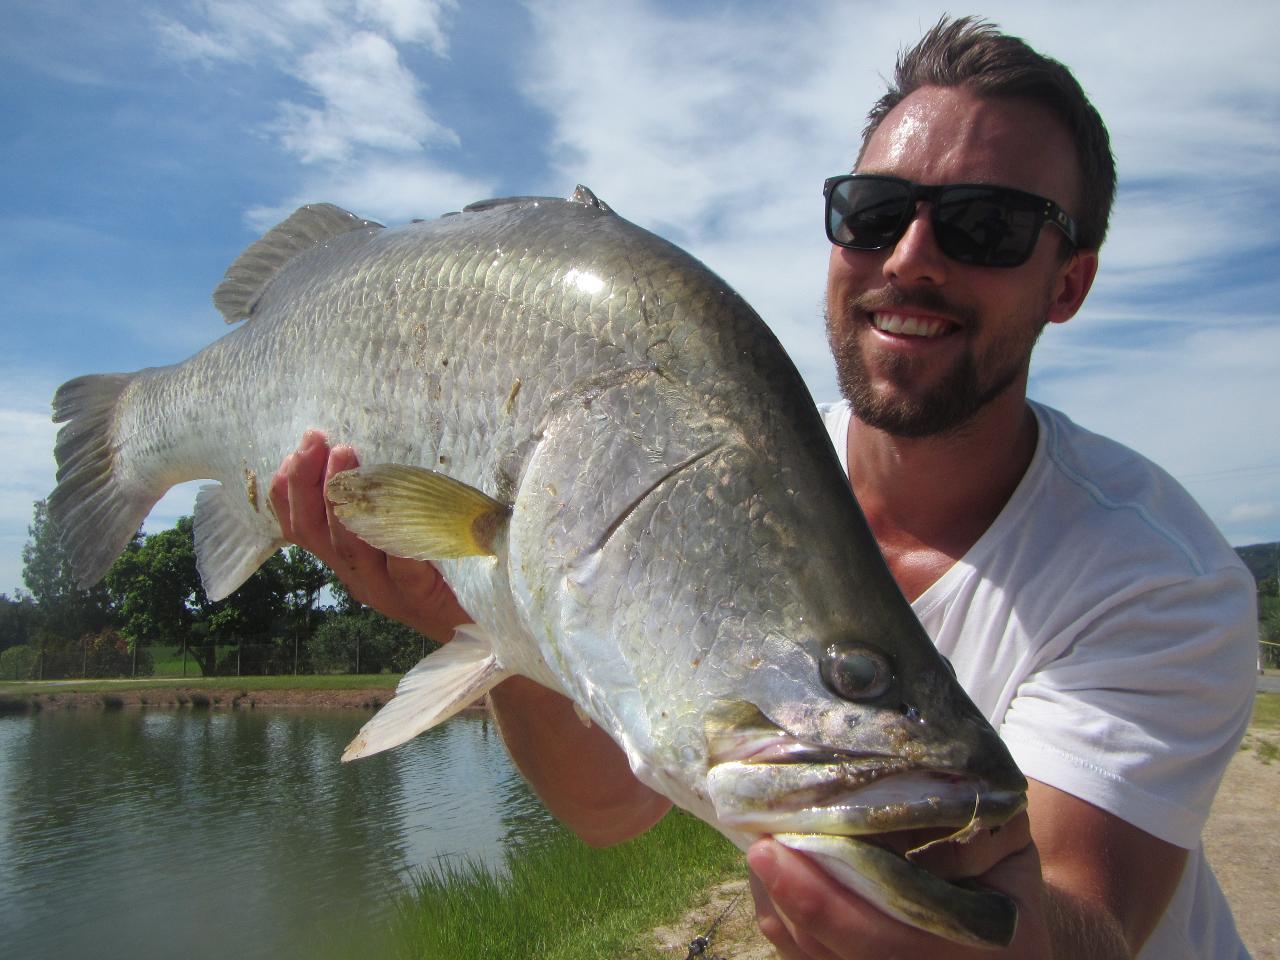 Ultimate Hook-a-Barra Fishing and Farm Tour